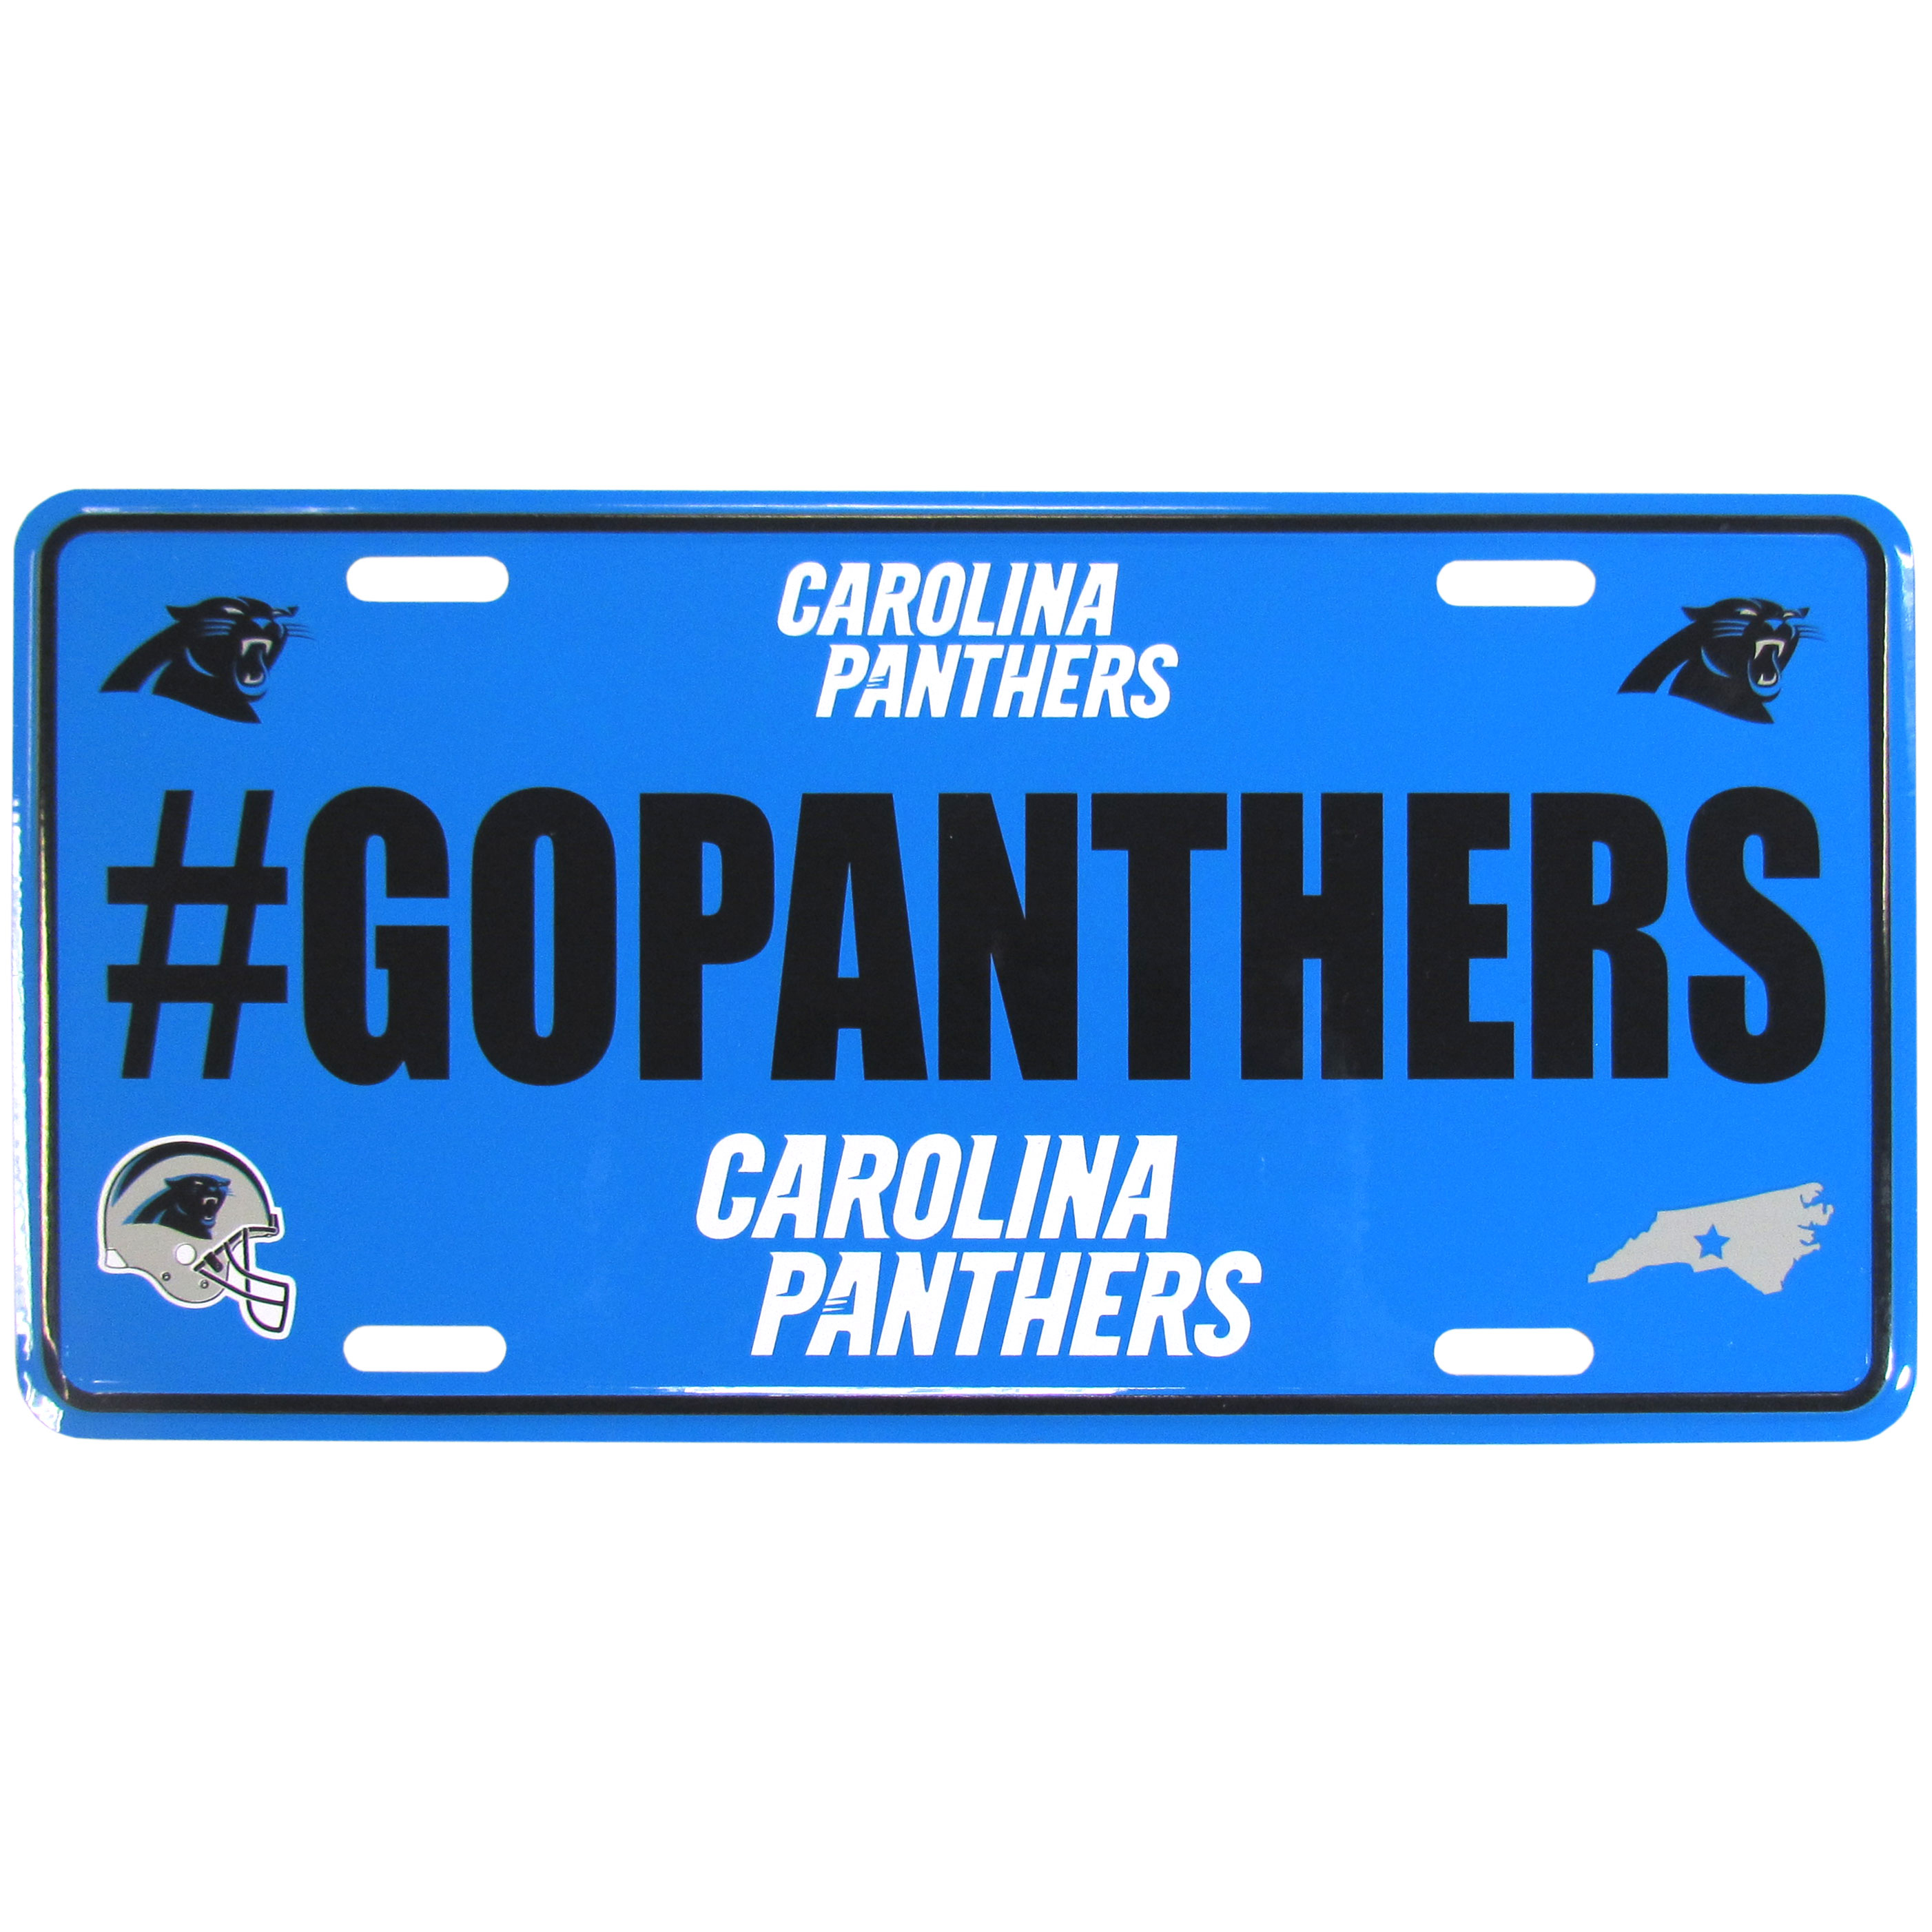 Carolina Panthers Hashtag License Plate - It's a hashtag world! Celebrate the Carolina Panthers with this stamped aluminum license plate with the most popular team hashtag! This bright license plate will look great on your vehicle or mounted in your fan cave.